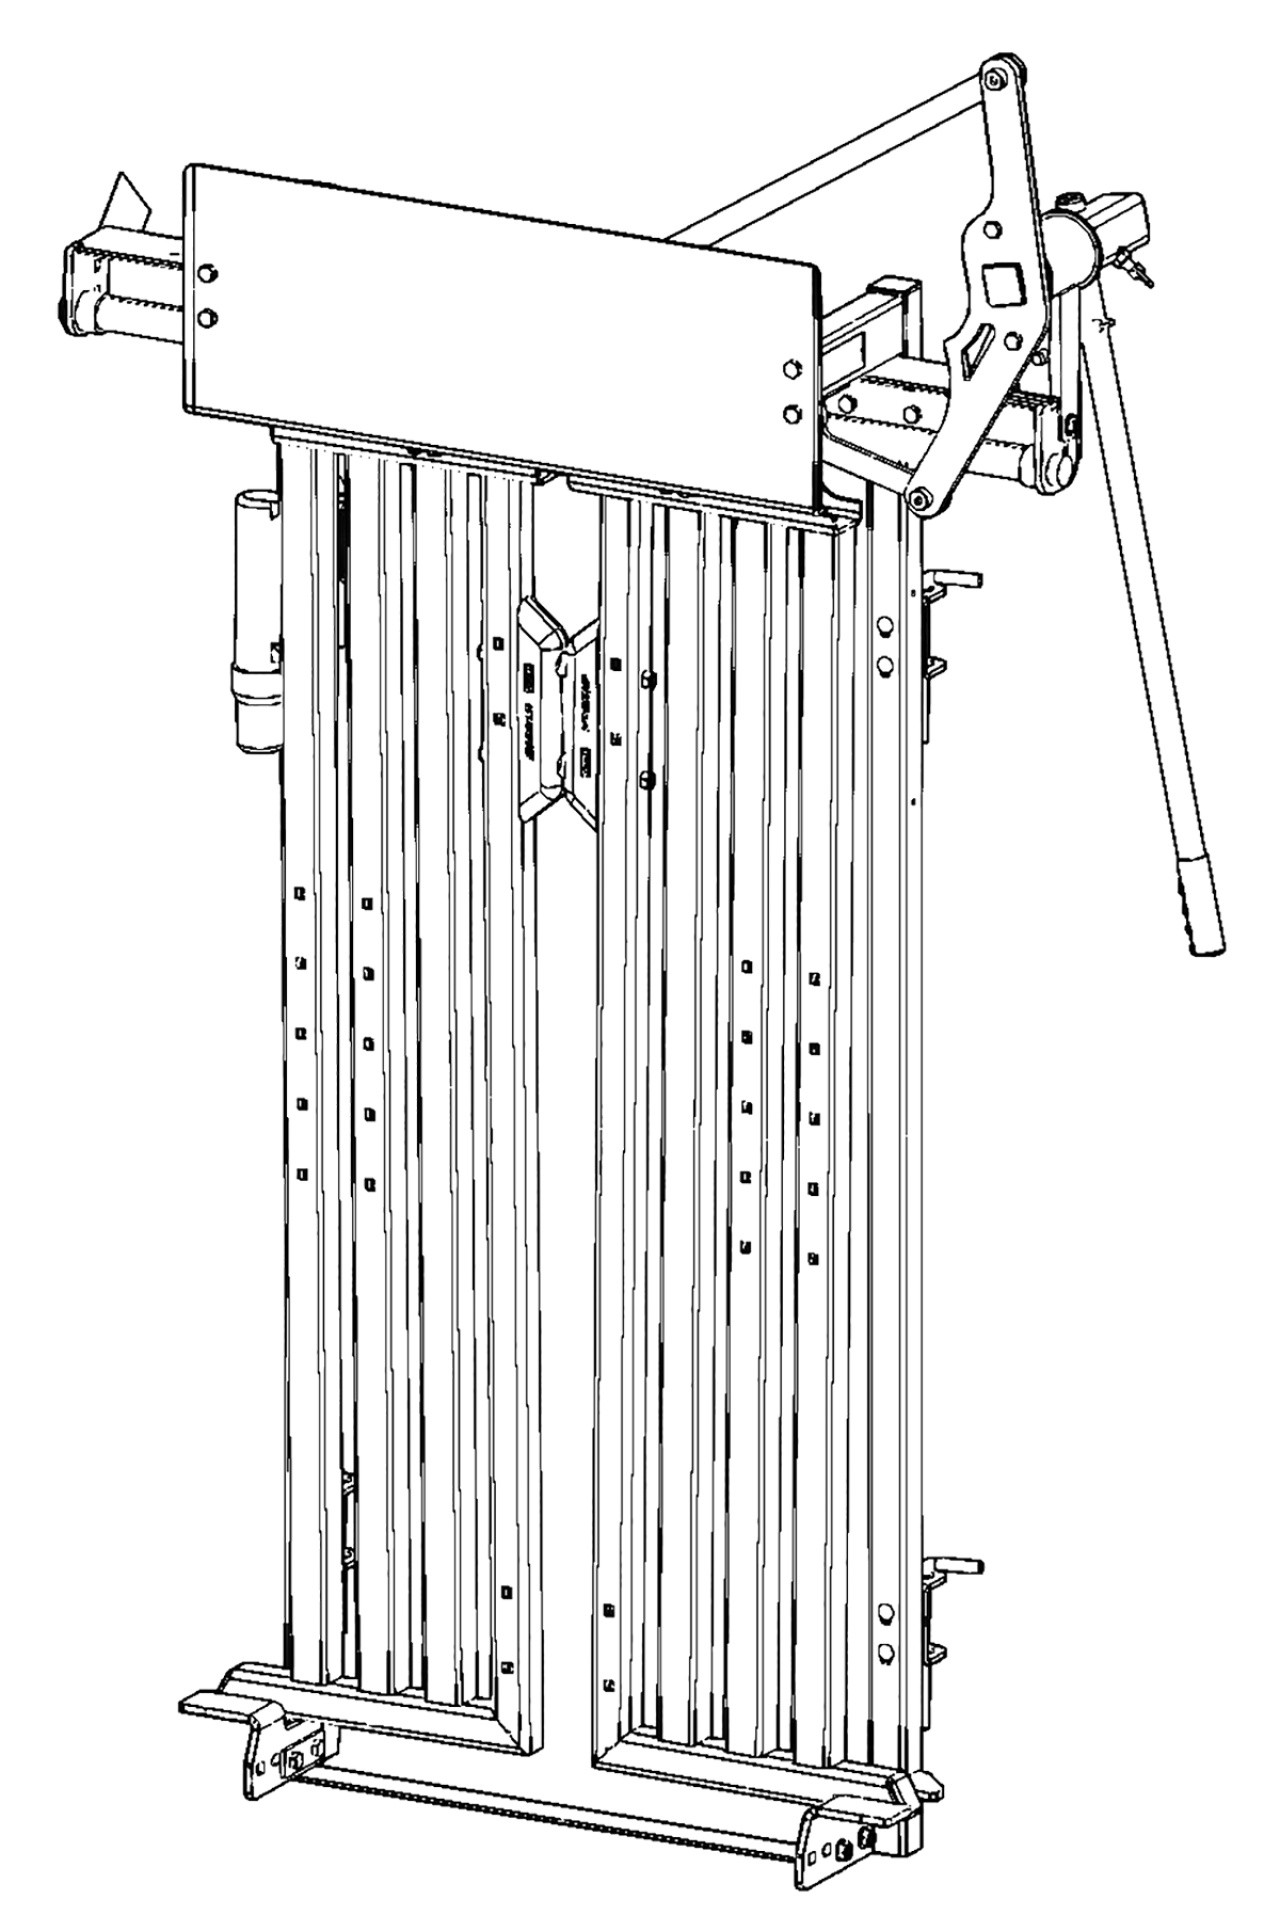 CAD drawing of a cattle head gate